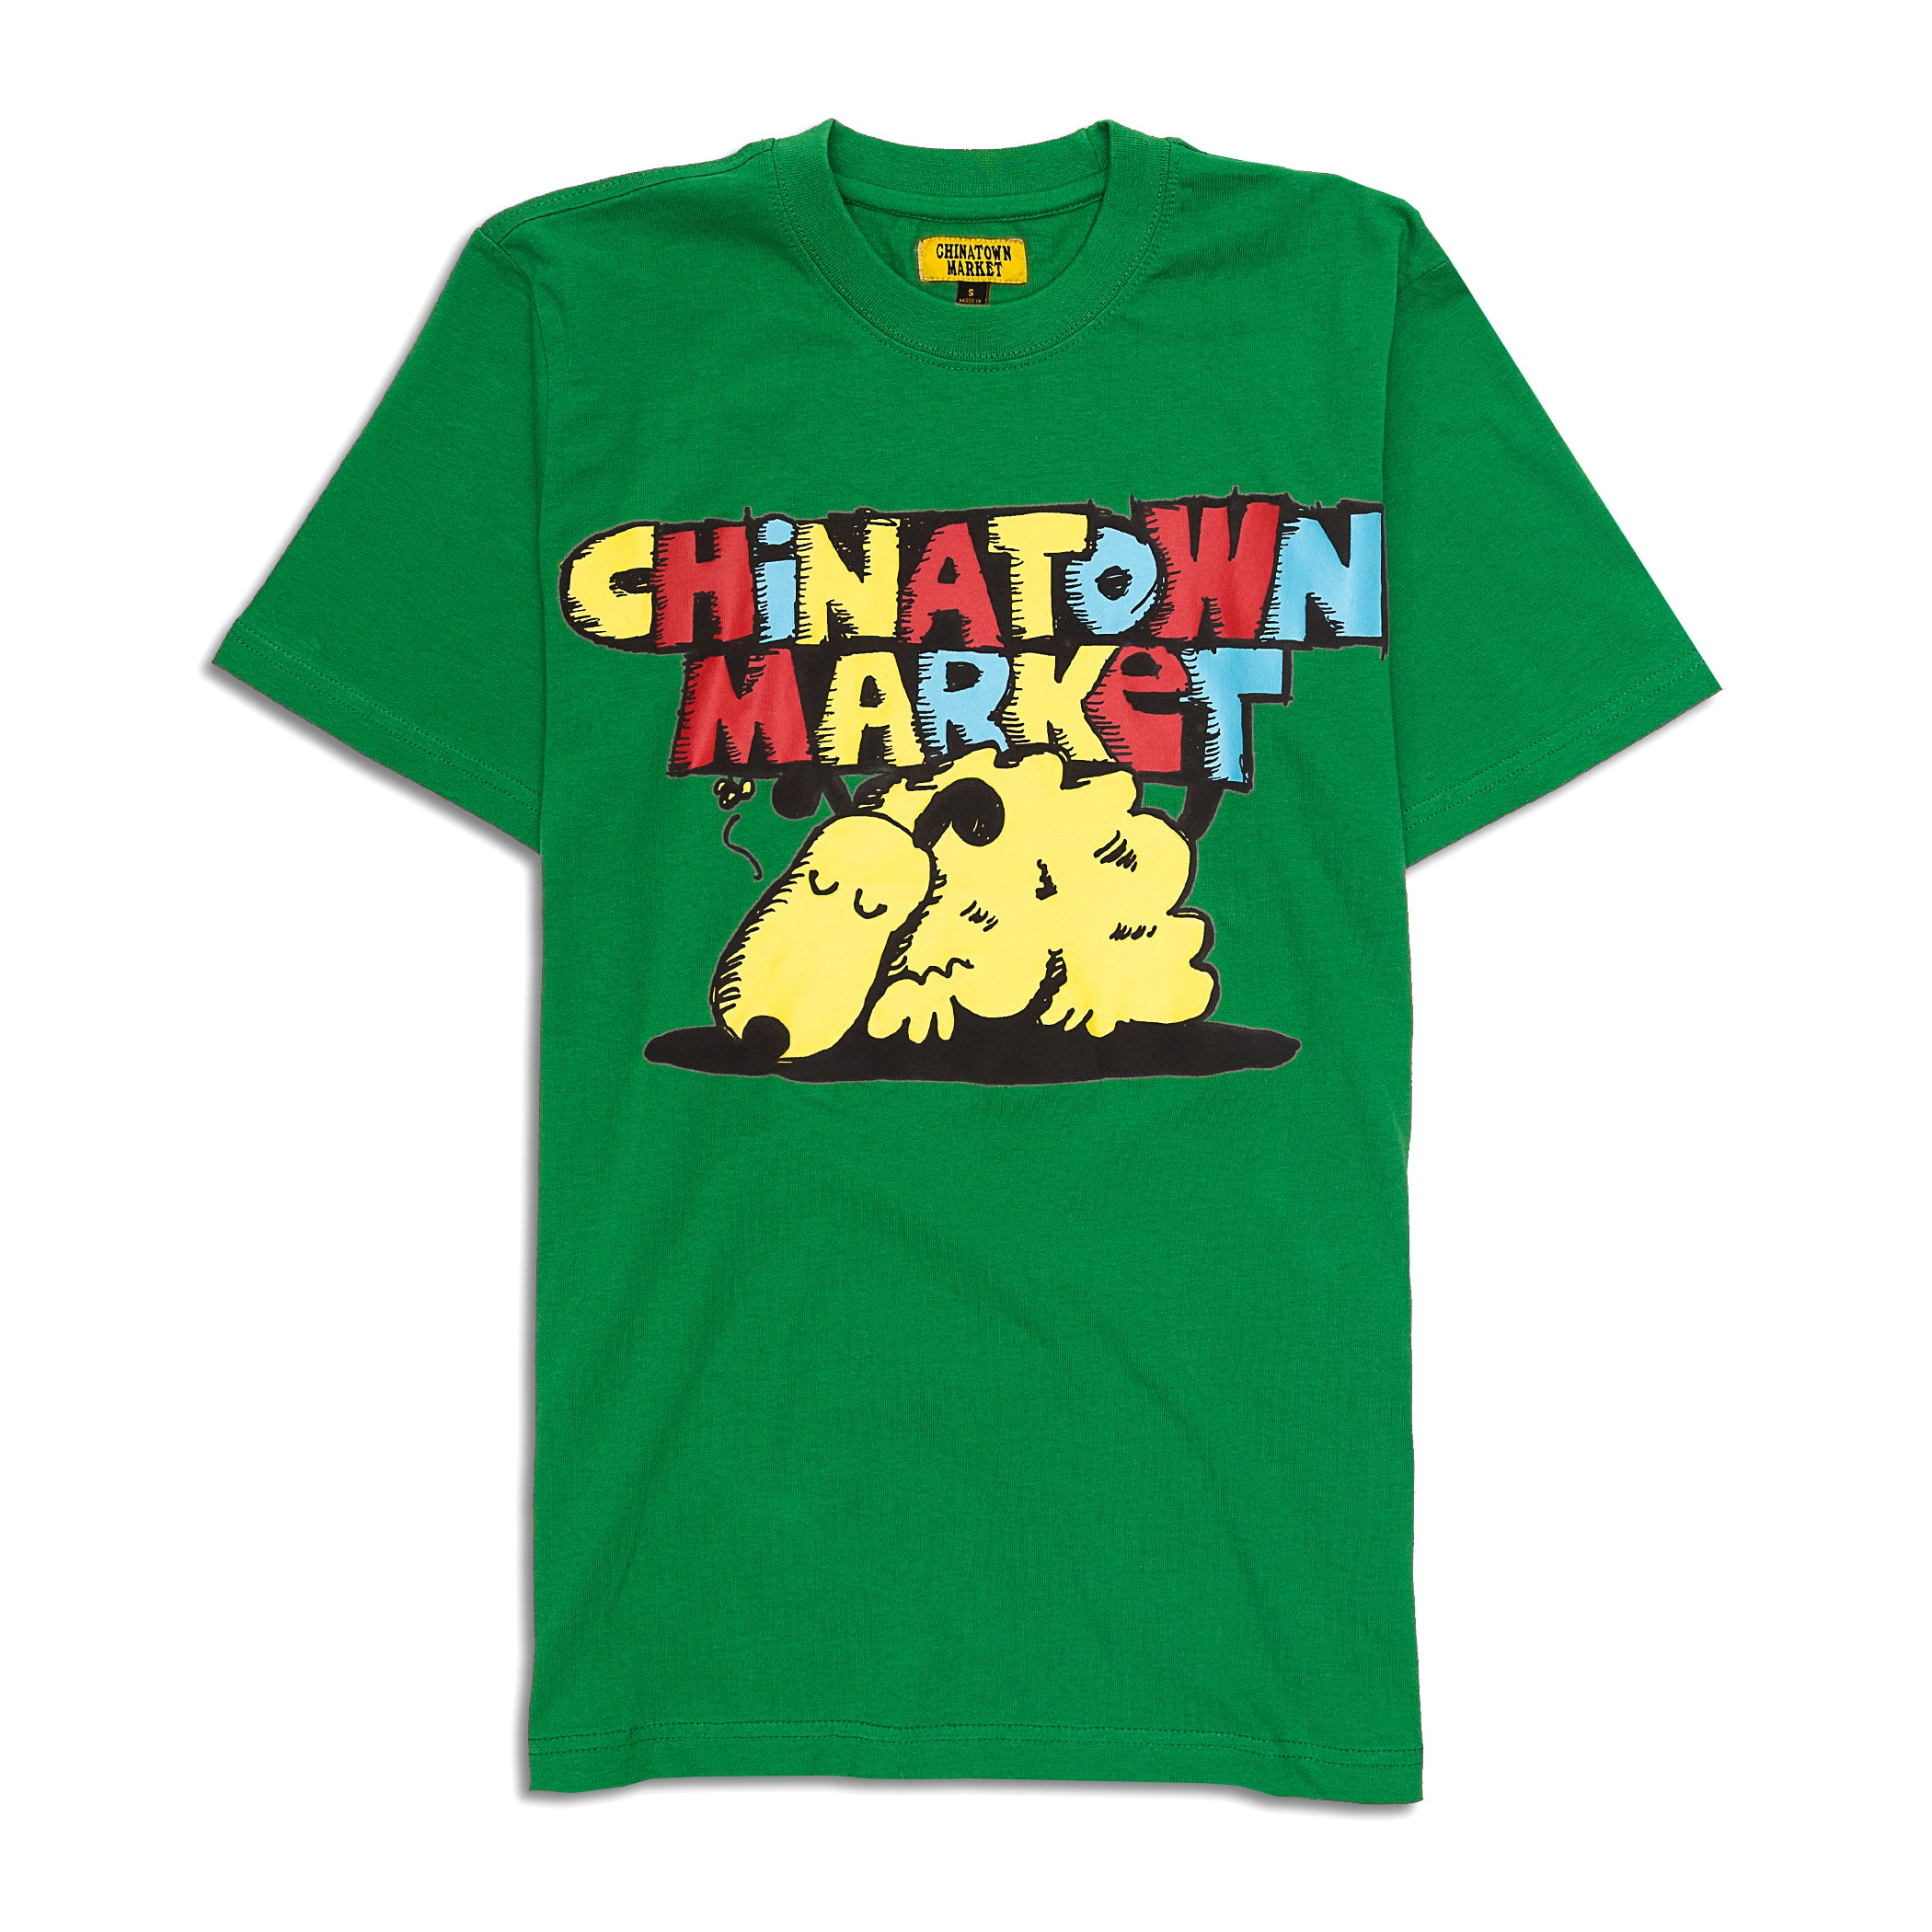 Chinatown Market - Sleeping Dog Tee